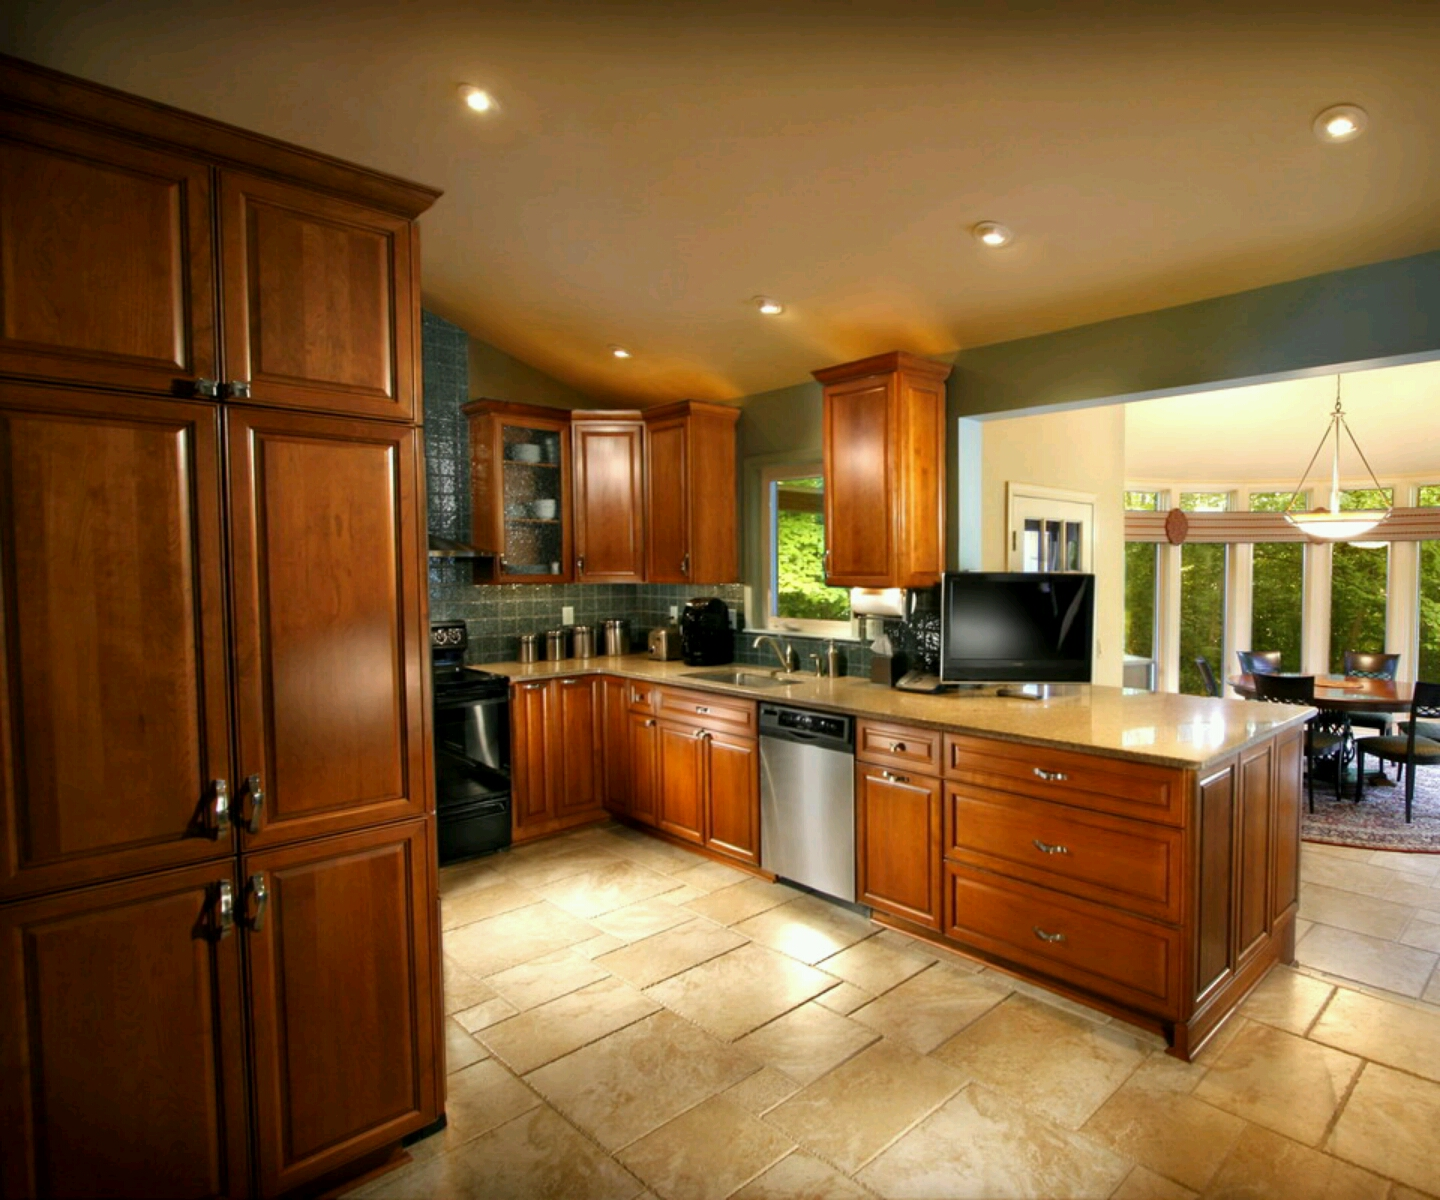 Luxury kitchen modern kitchen cabinets designs best for Luxury modern kitchen